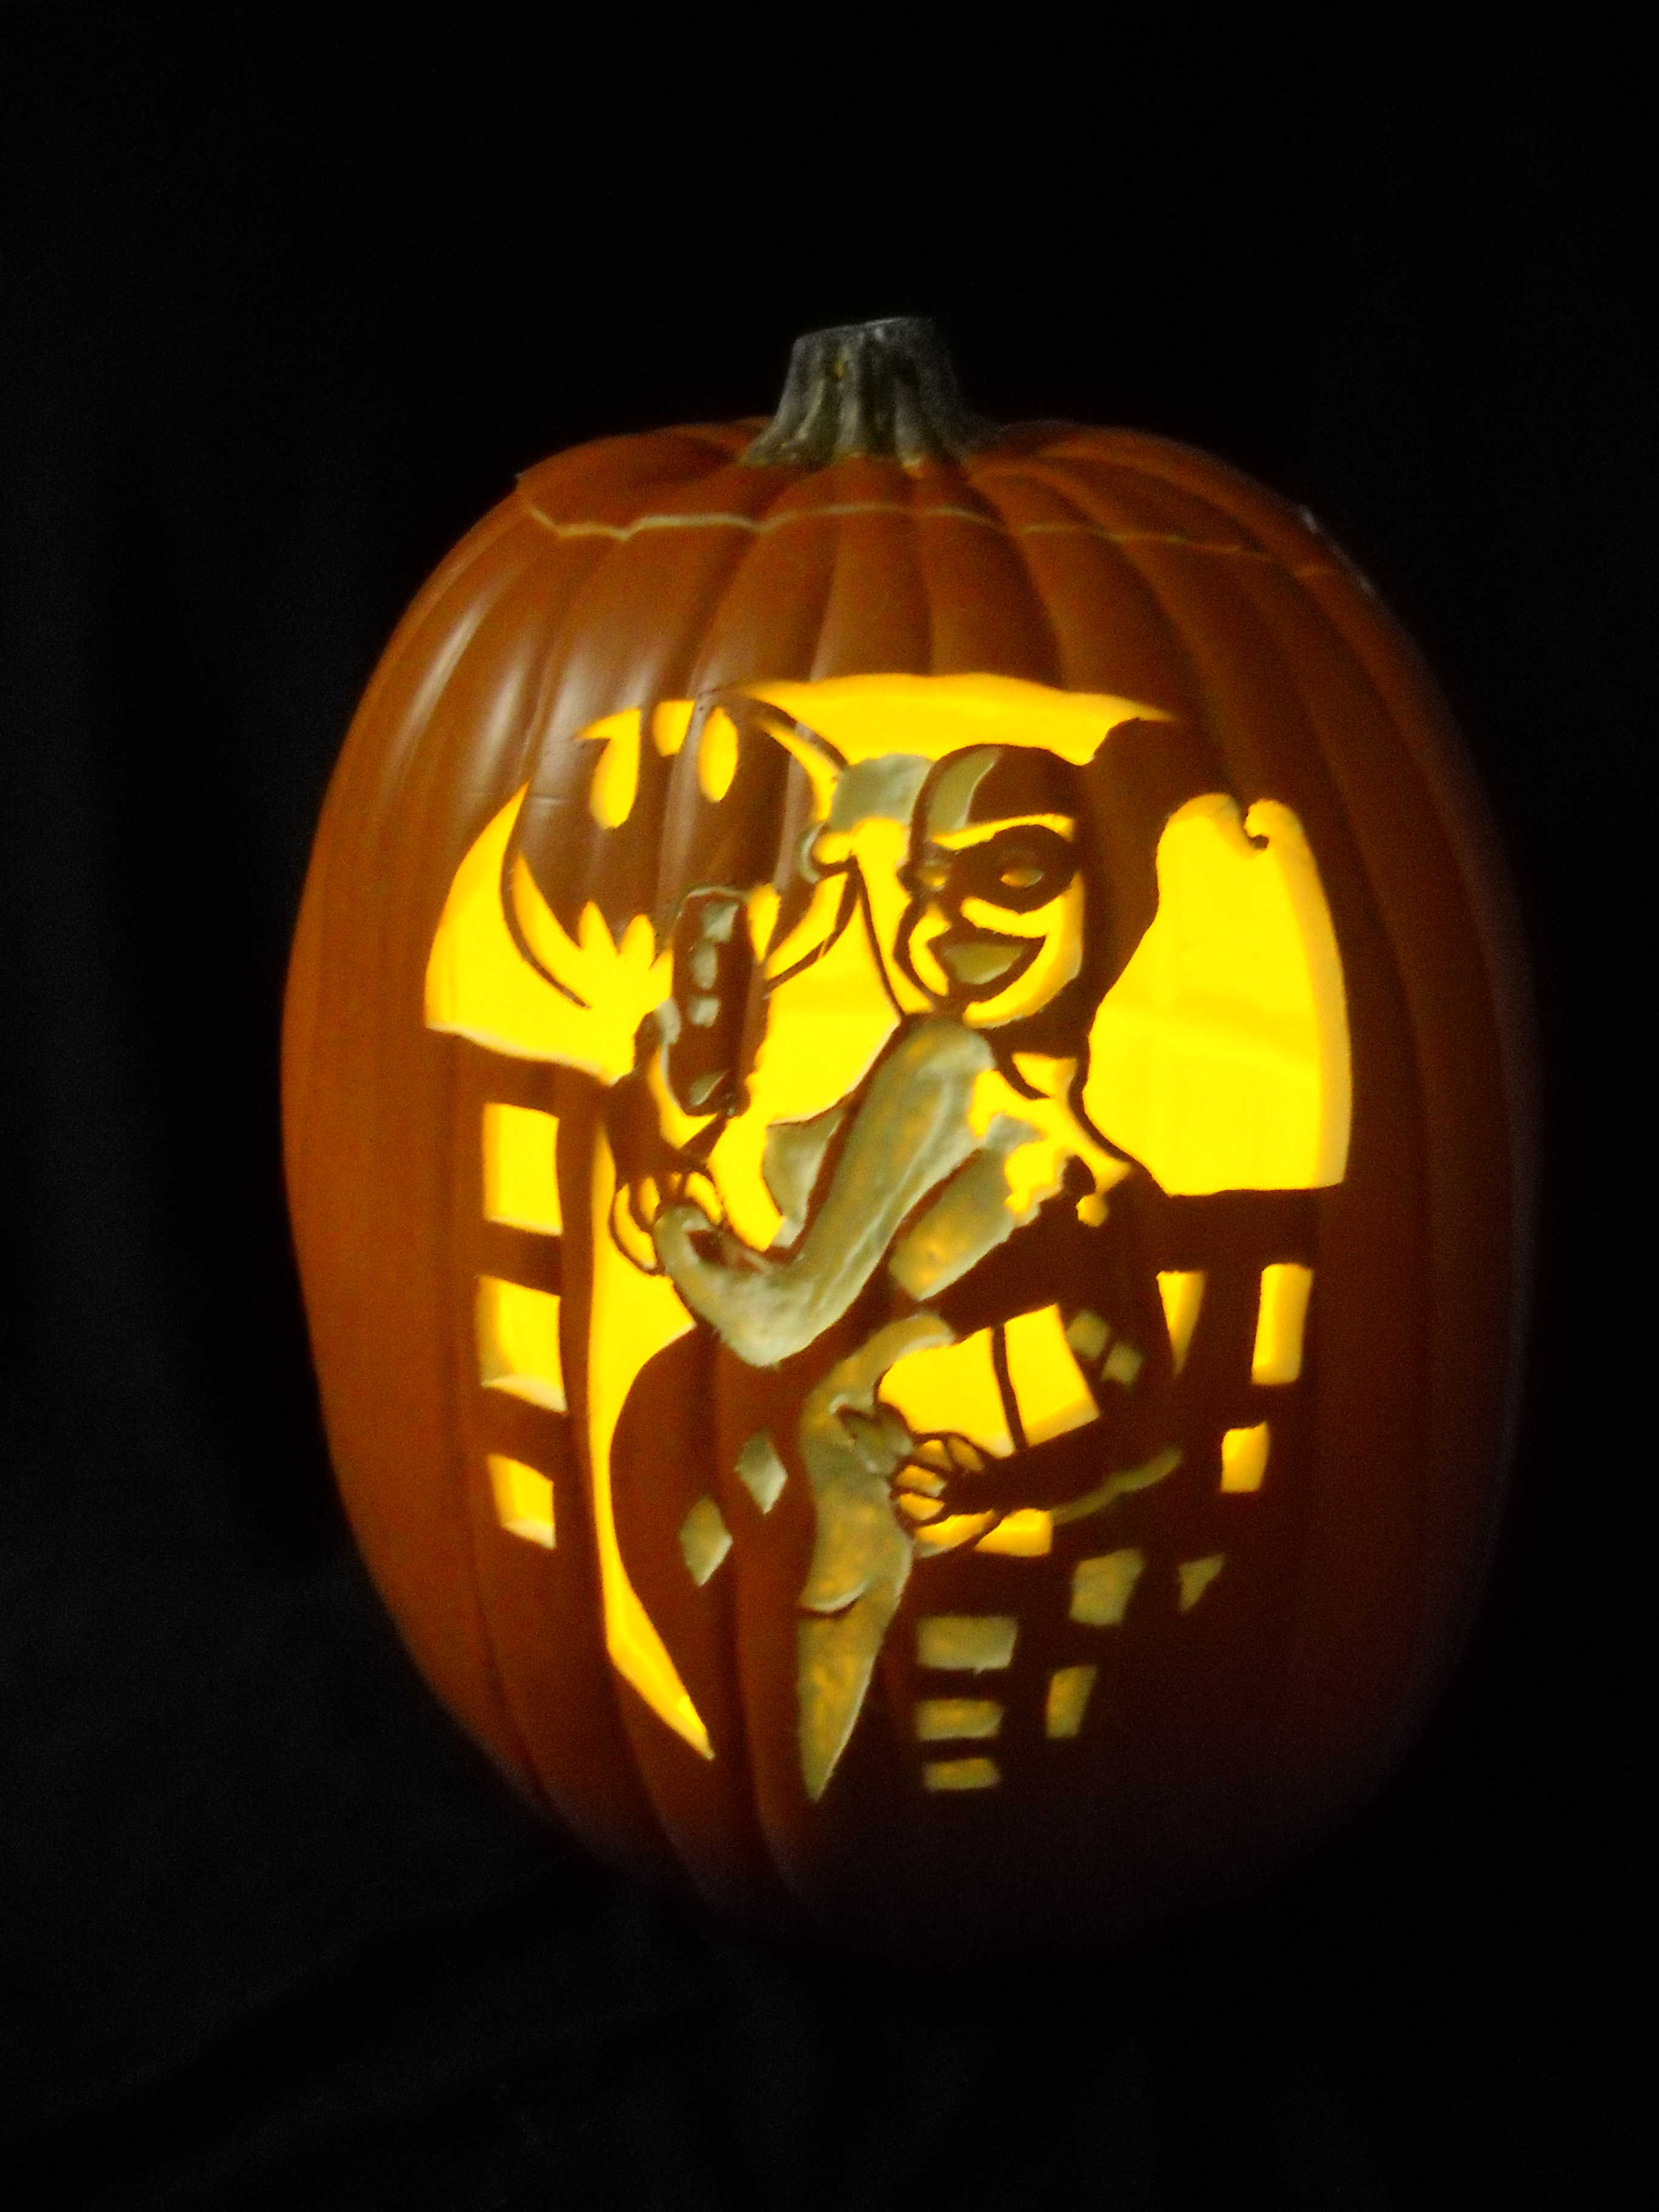 Pumpkin carving harley quinn based on the art of